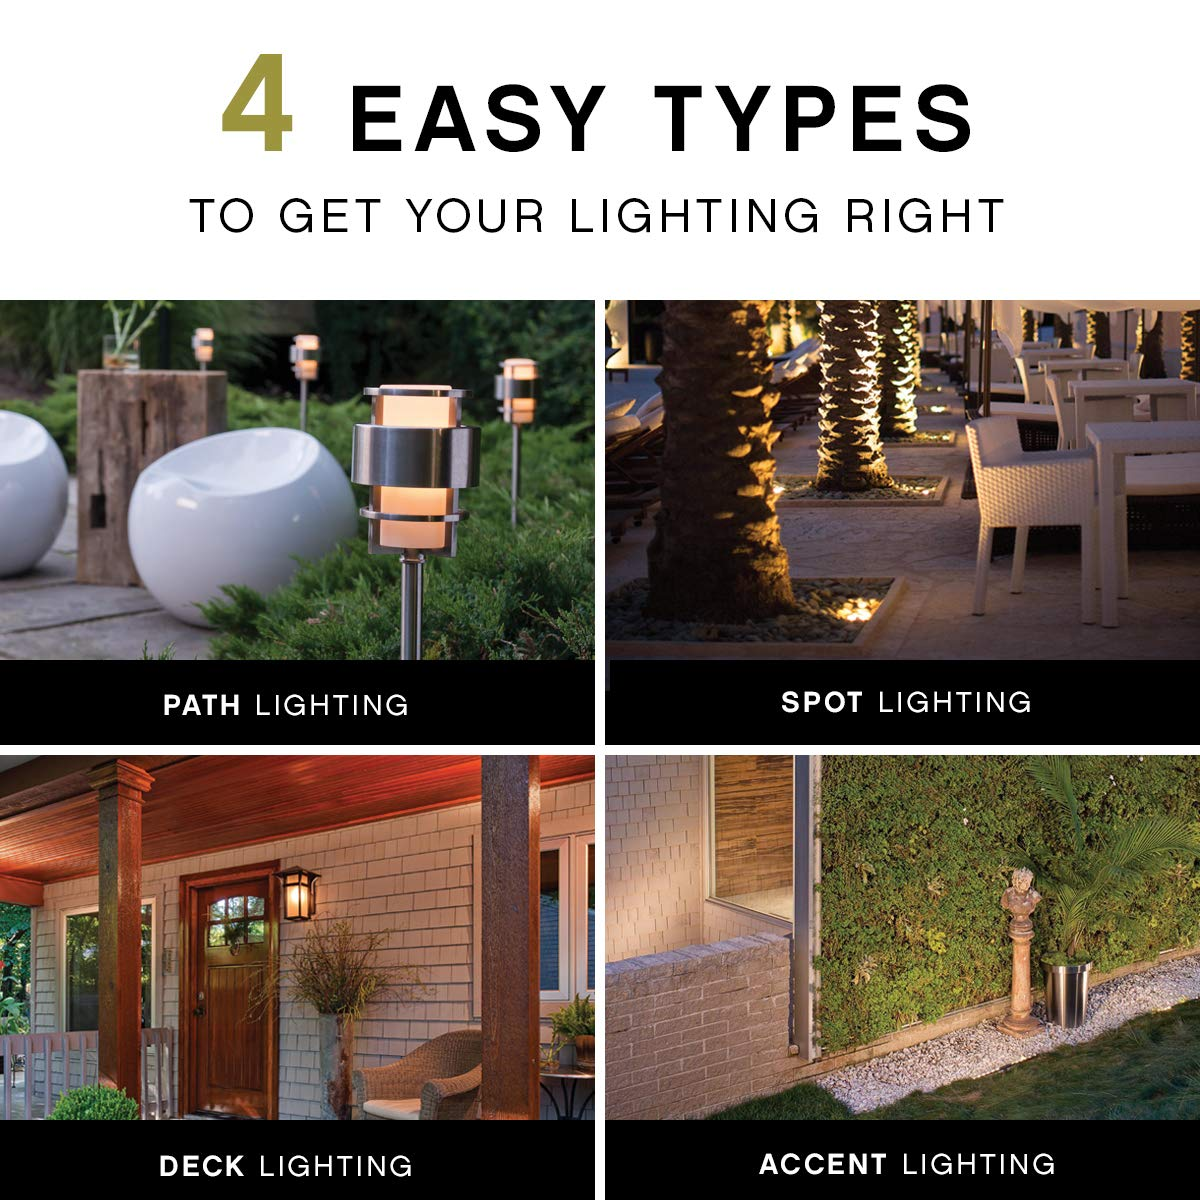 ADA Compliant and Energy Efficient Small Step Light Hinkley Landscape Lighting LED Luna Step Light 58508BZ Hinkley Lighting Add Safety and Security Indoors and Outdoors Bronze Finish